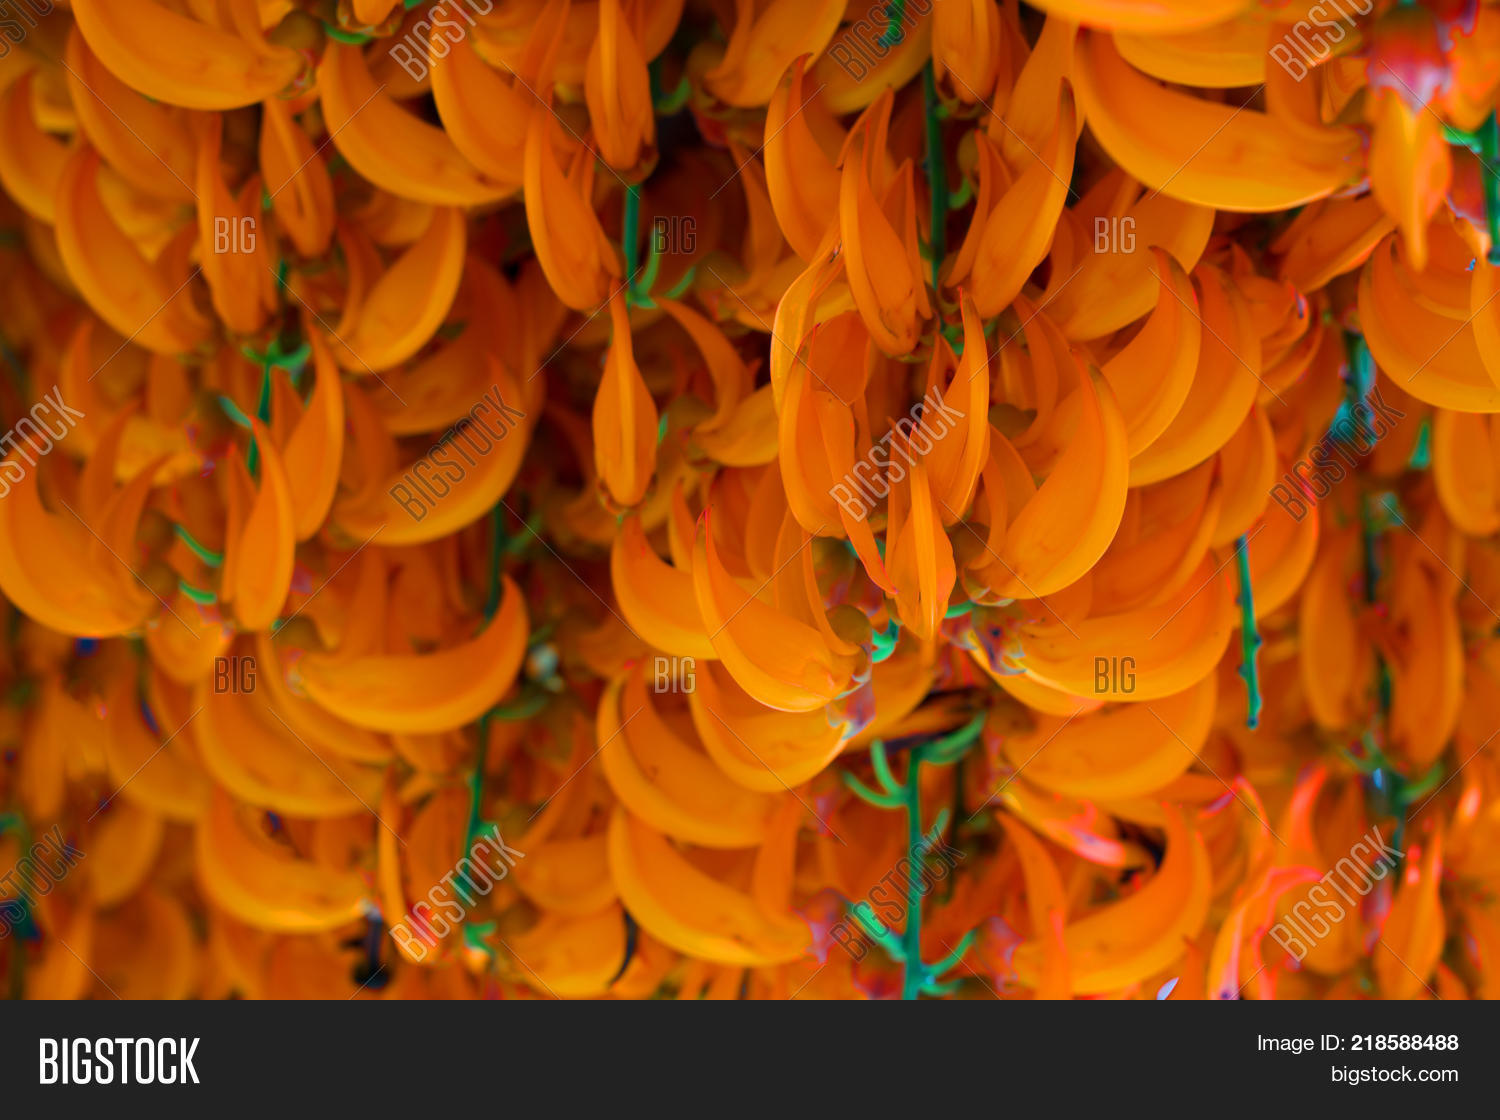 Orange Flower Name Red Image Photo Free Trial Bigstock